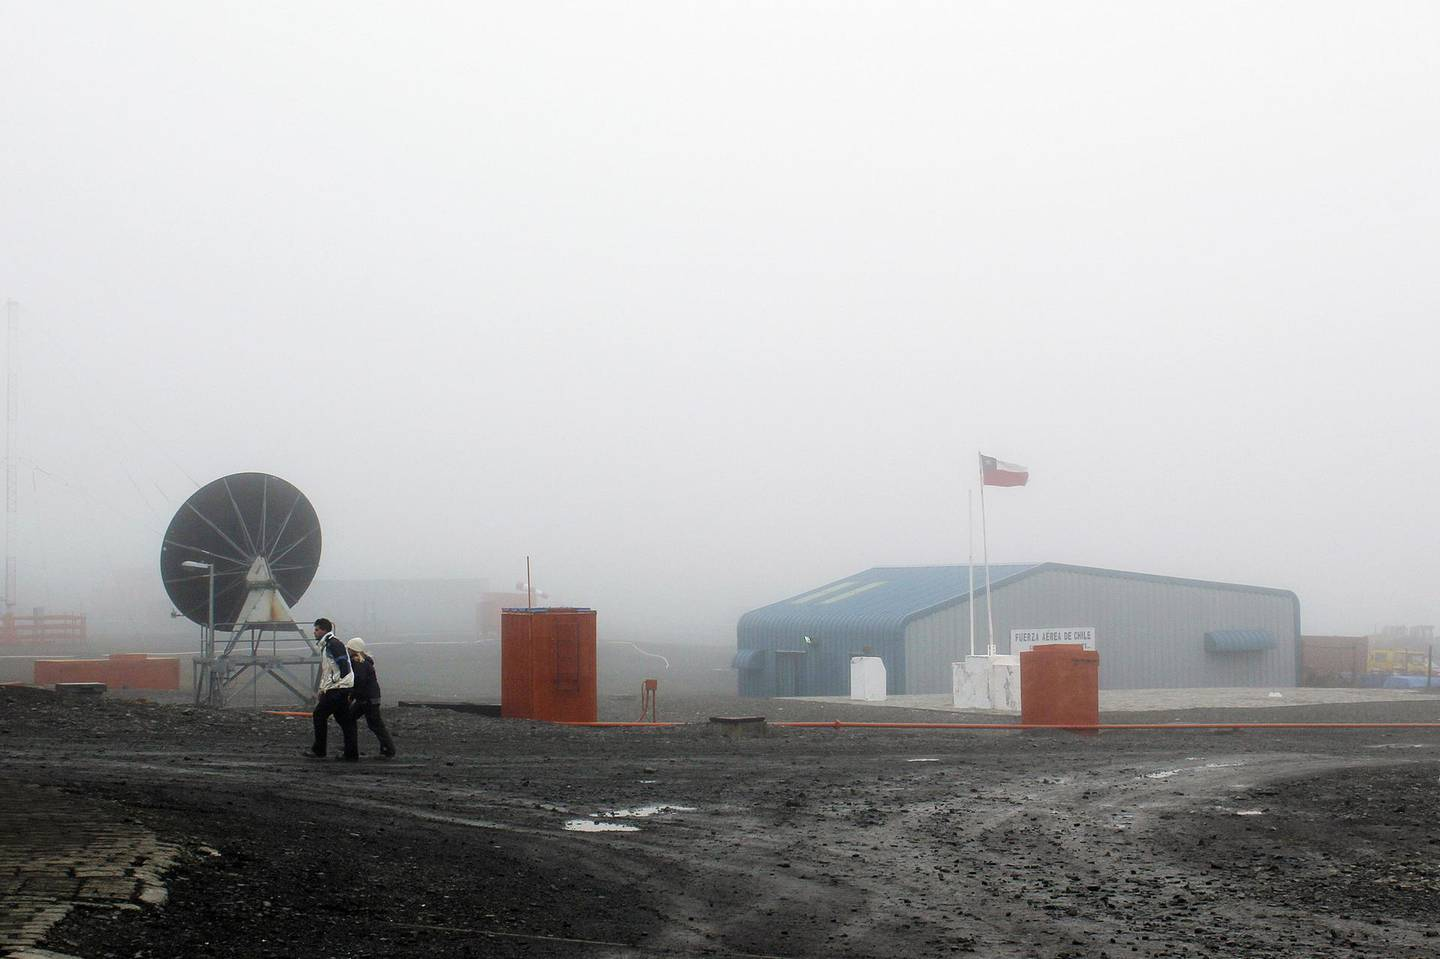 epa05936125 A picture dated on 07 February 2017, shows the view of Villa Las Estrellas, a Chilean village located in Antarctica. The small outpost which also serves as a research center endures extreme weather and limited hours of daylight in the winter months.  EPA/JULIA TALARN